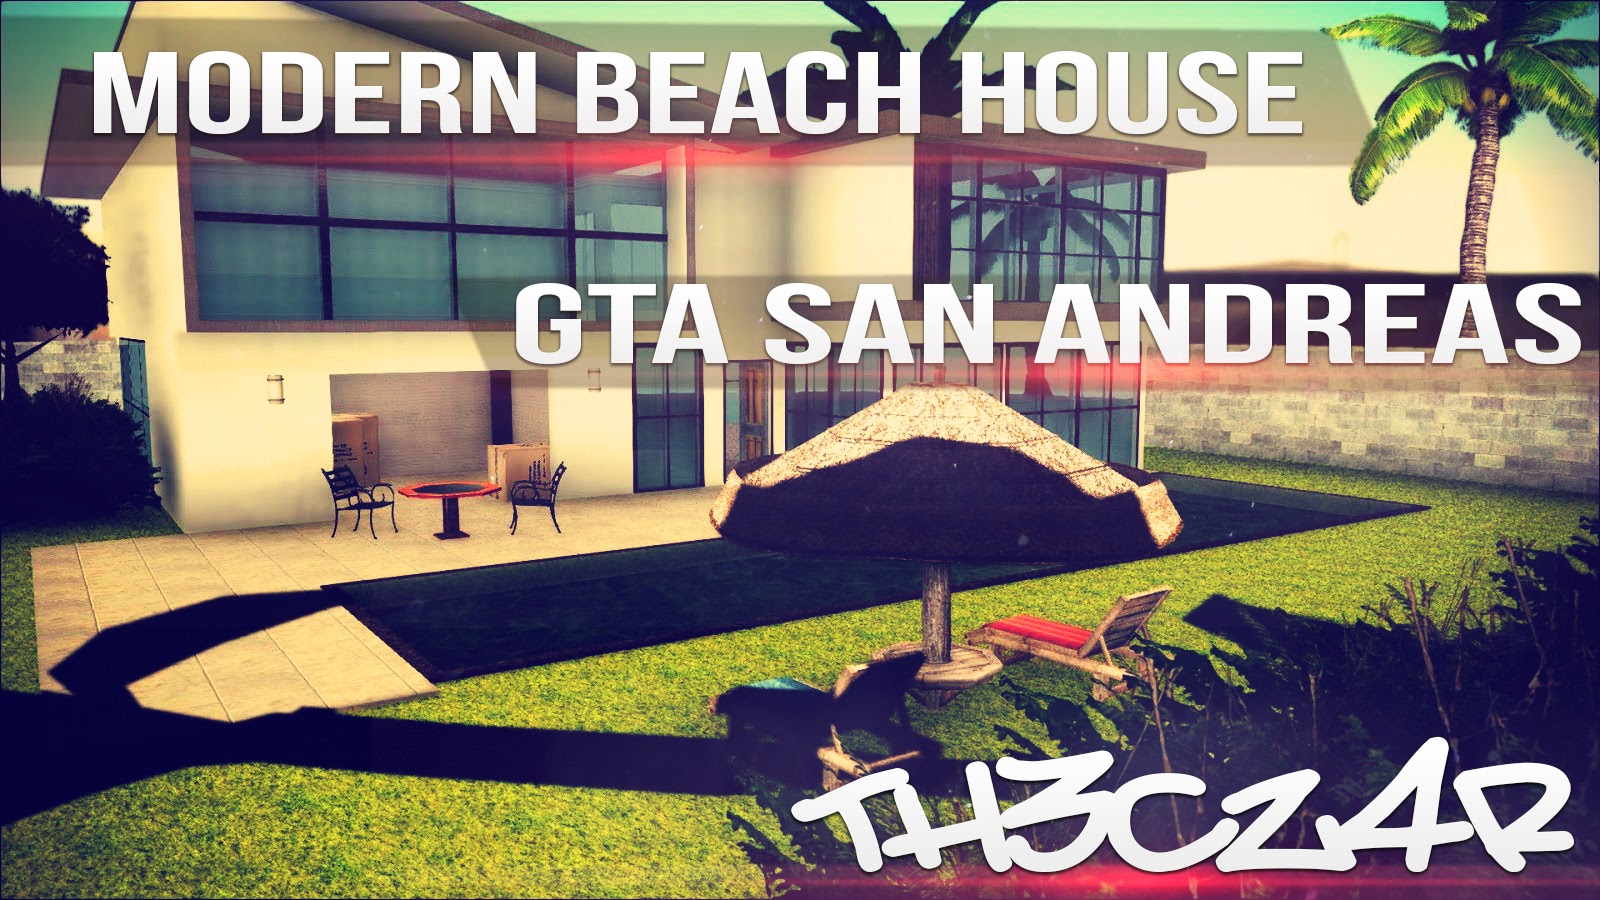 Modern beach house casa moderna en la playa mod hd for Casa moderna 4x4